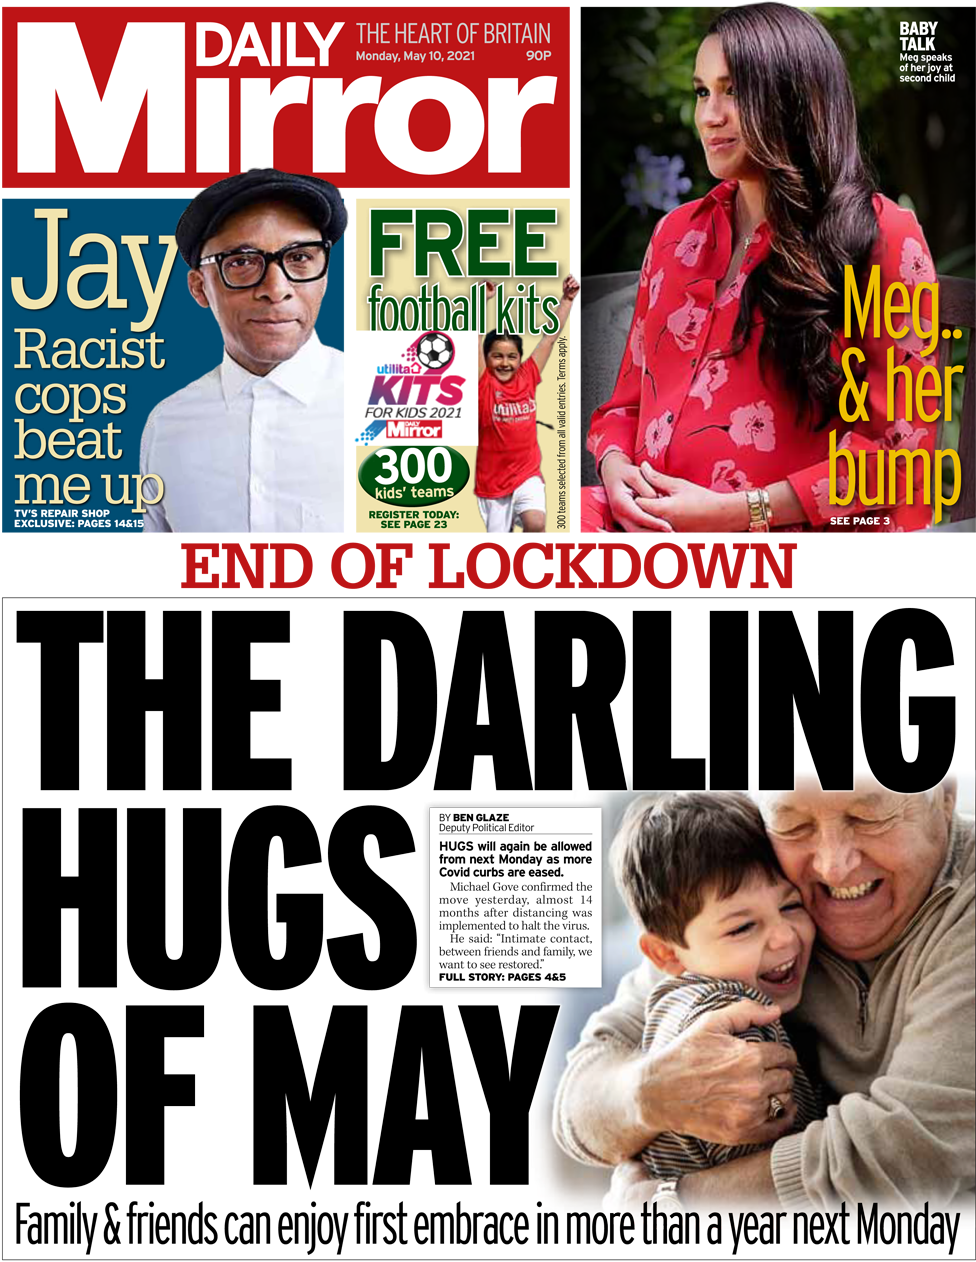 The Daily Mirror front page 10 May 2021